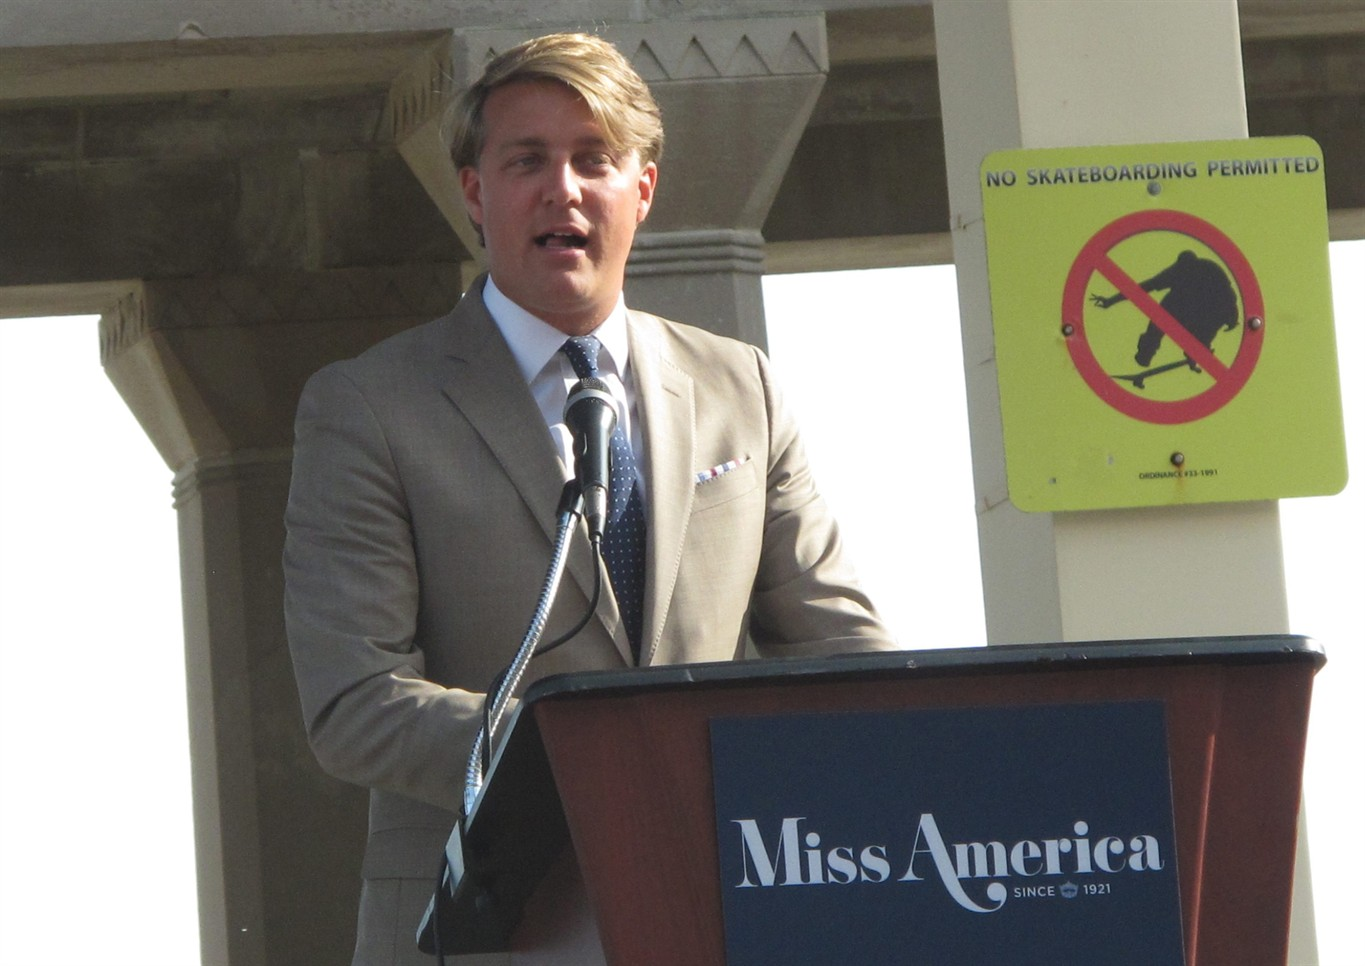 Miss America CEO Sam Haskell Resigns Amid Offensive Email Scandal